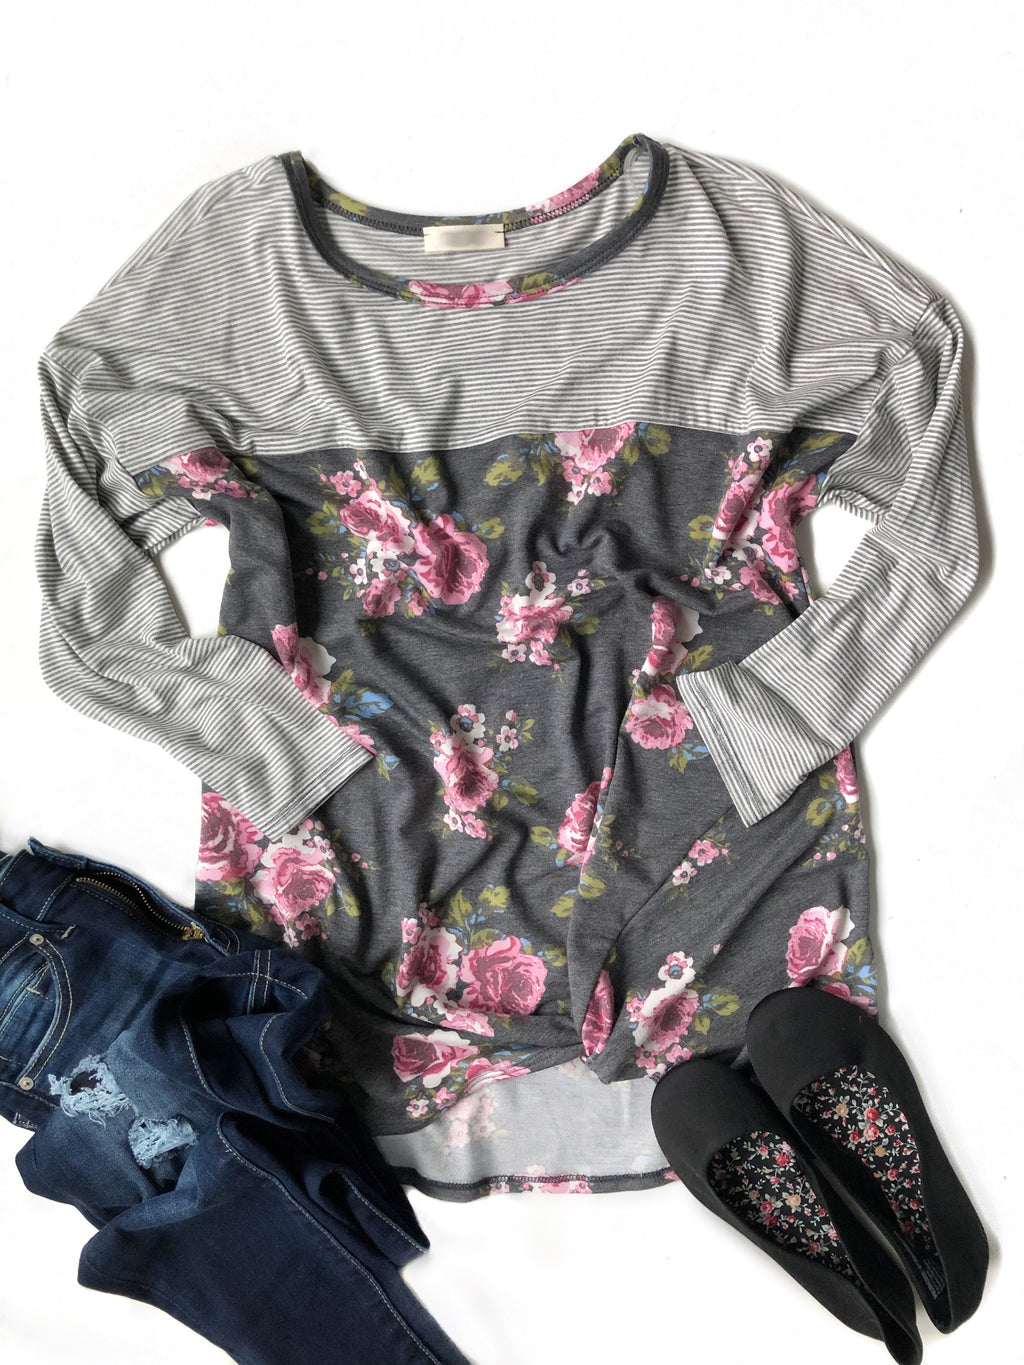 Missing You Floral Twist Top in Charcoal